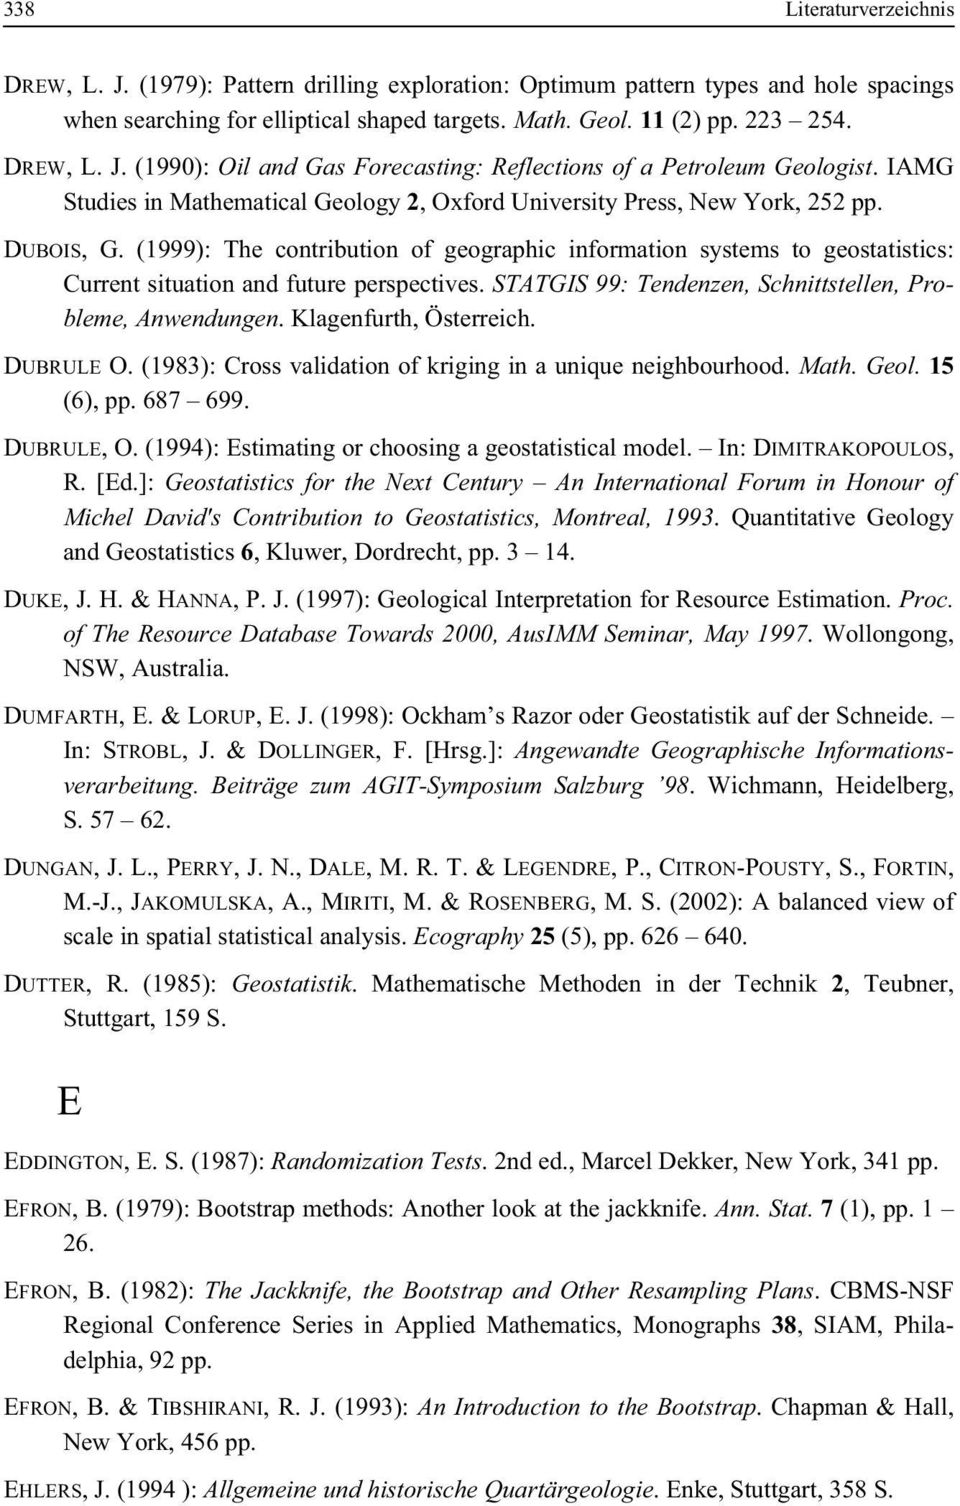 (1999): The contribution of geographic information systems to geostatistics: Current situation and future perspectives. STATGIS 99: Tendenzen, Schnittstellen, Probleme, Anwendungen.